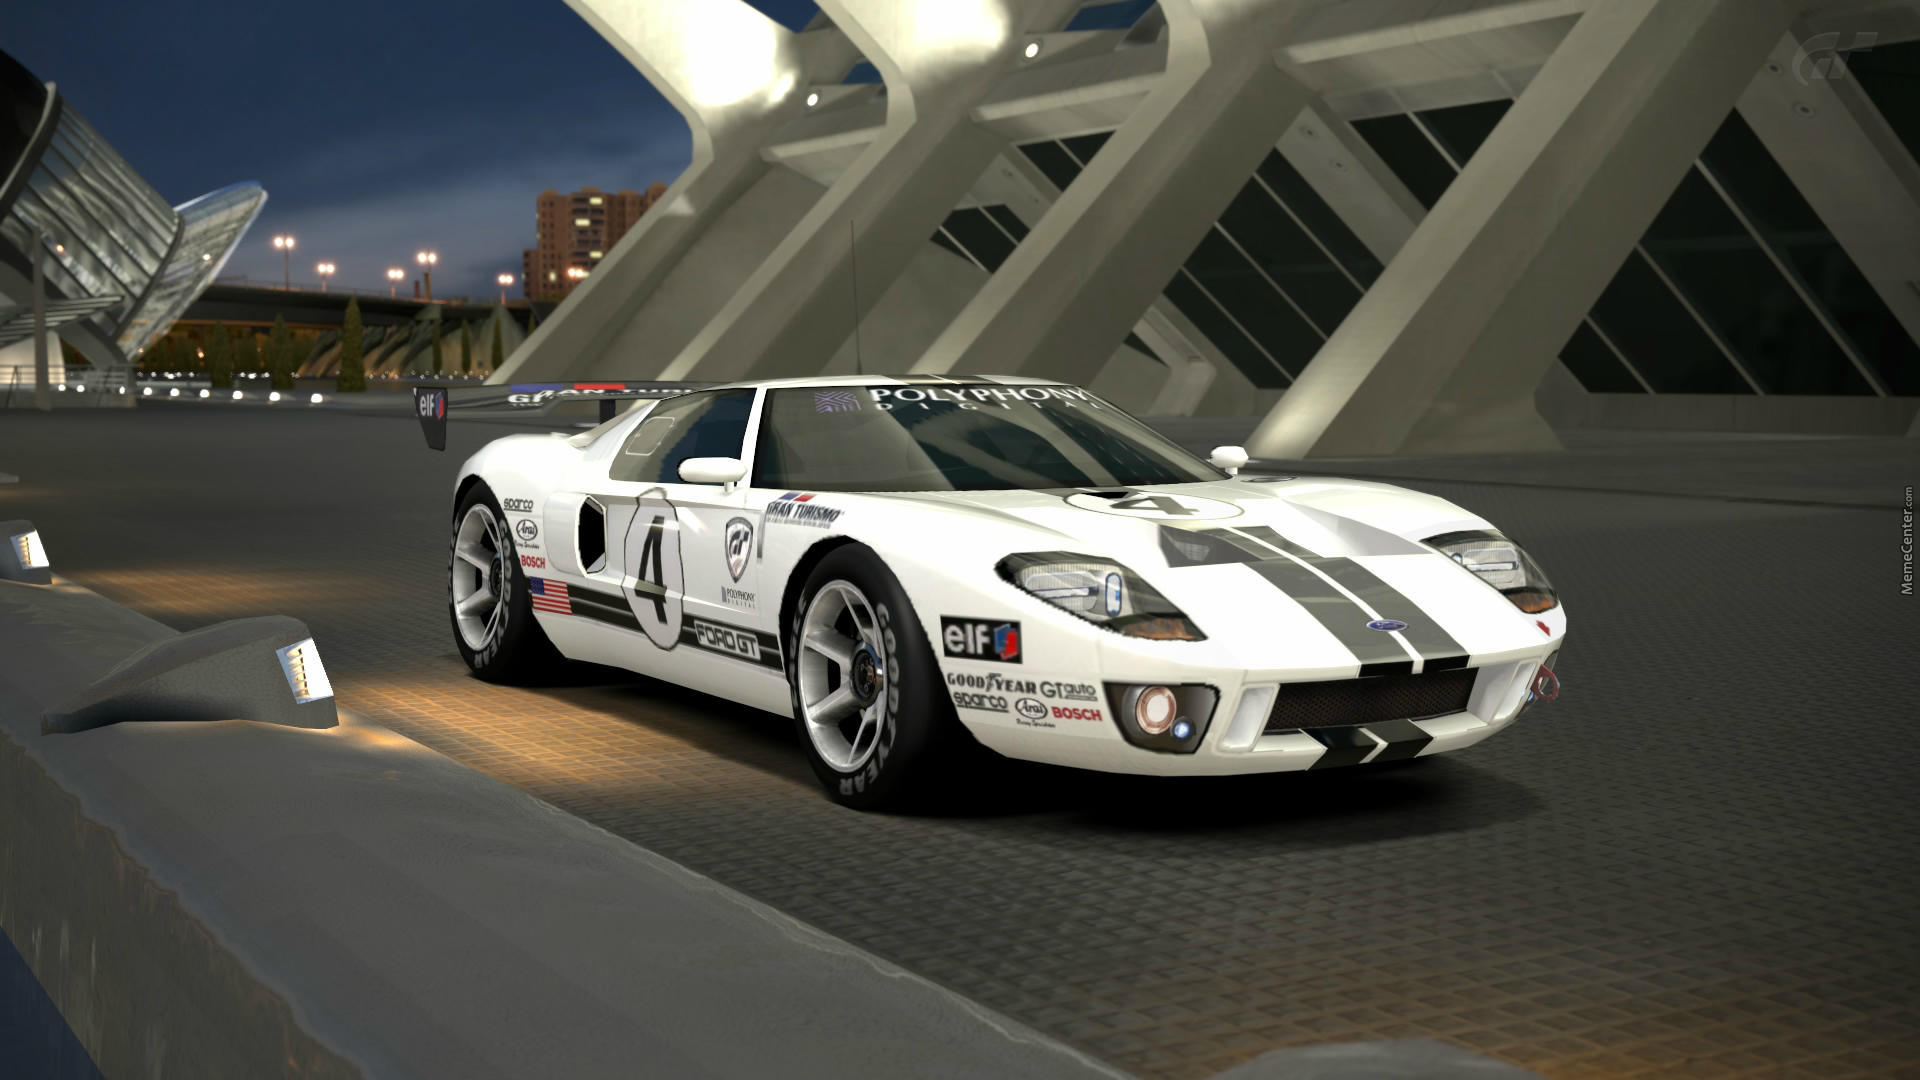 Ford Gt Lm Race Car Spec Ii At The City Of Arts And Sciences At Night